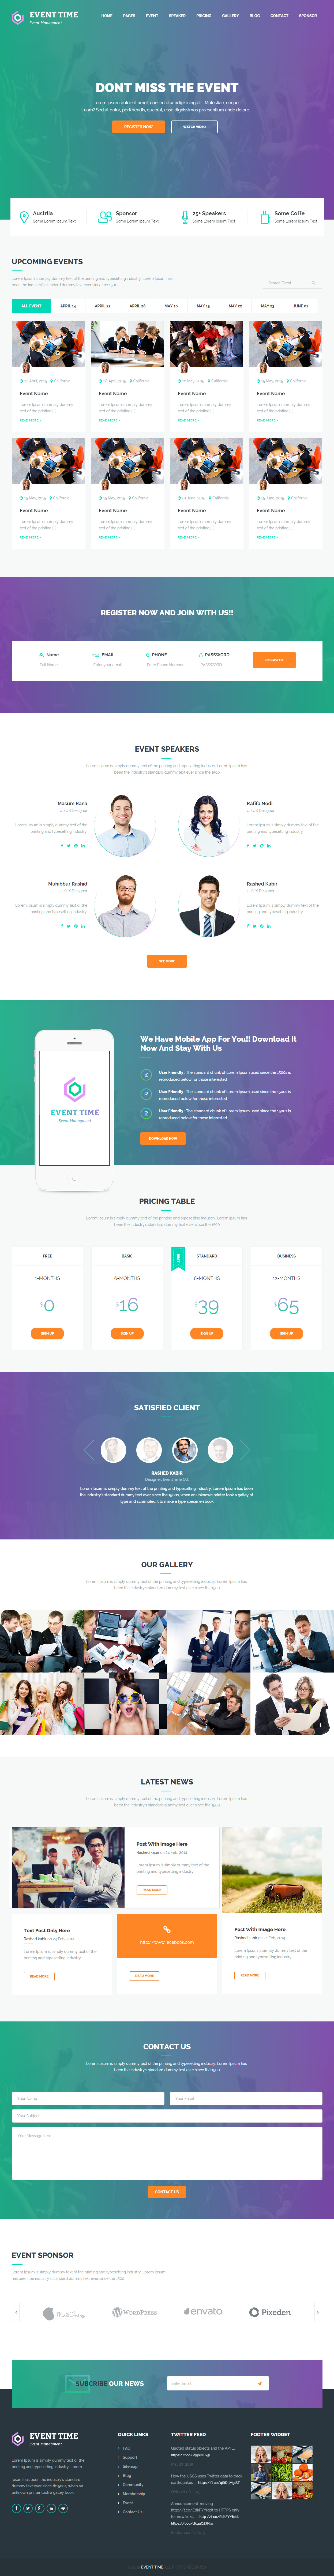 Best Responsive HTML5 Conference Templates in 2015 - Responsive Miracle